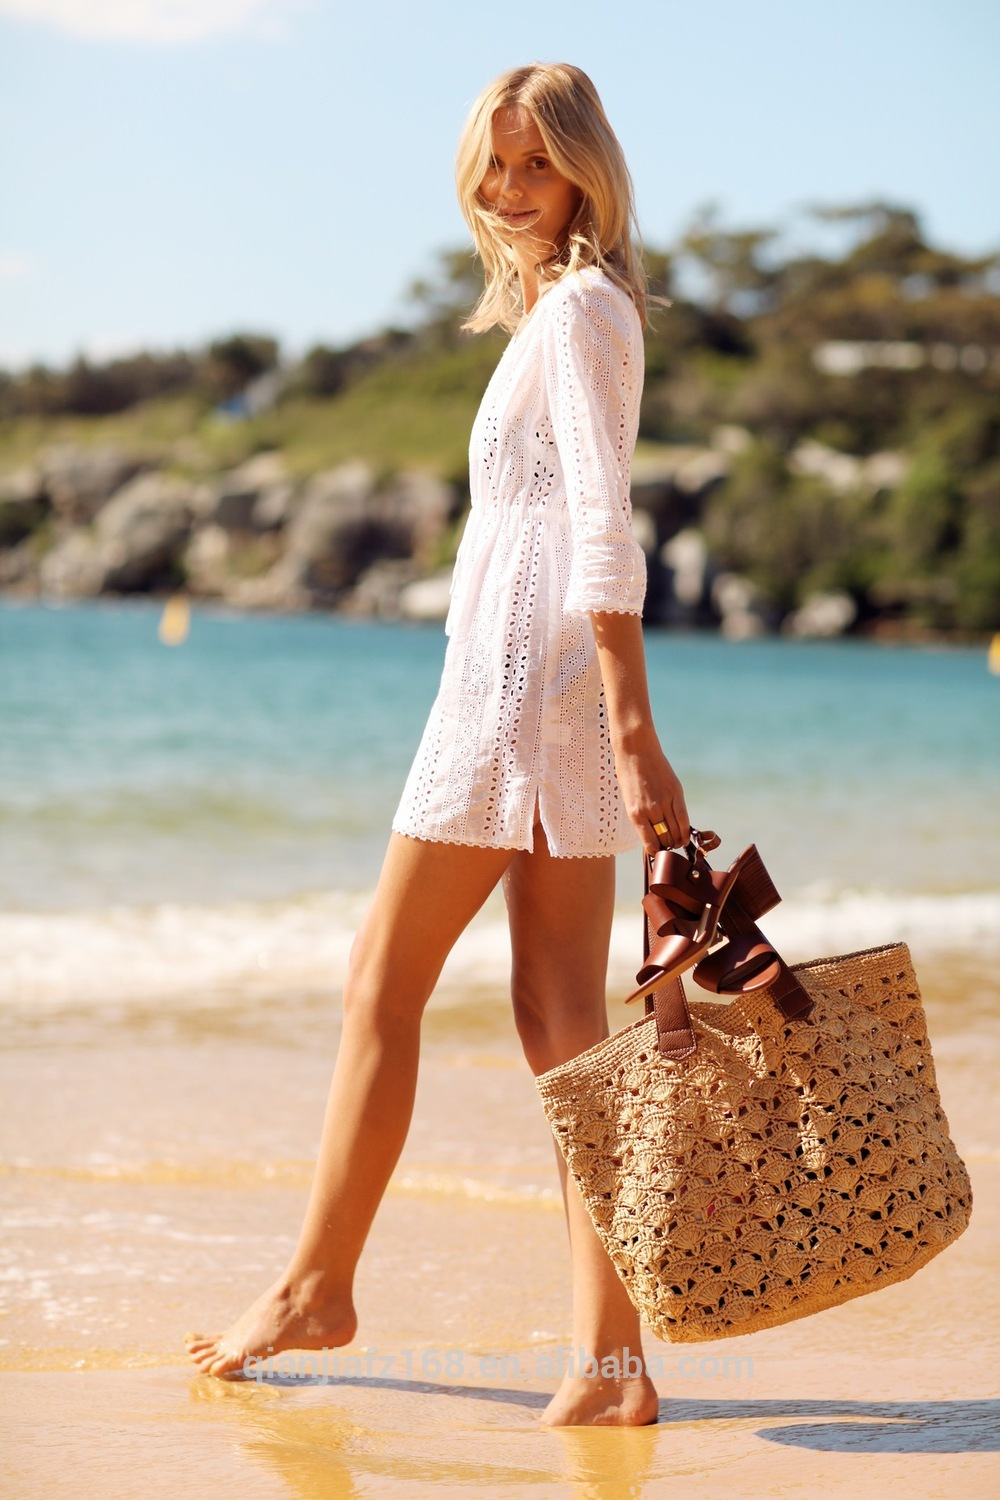 Eniwhere Fashion - Beach outfits 2015 - Tuula